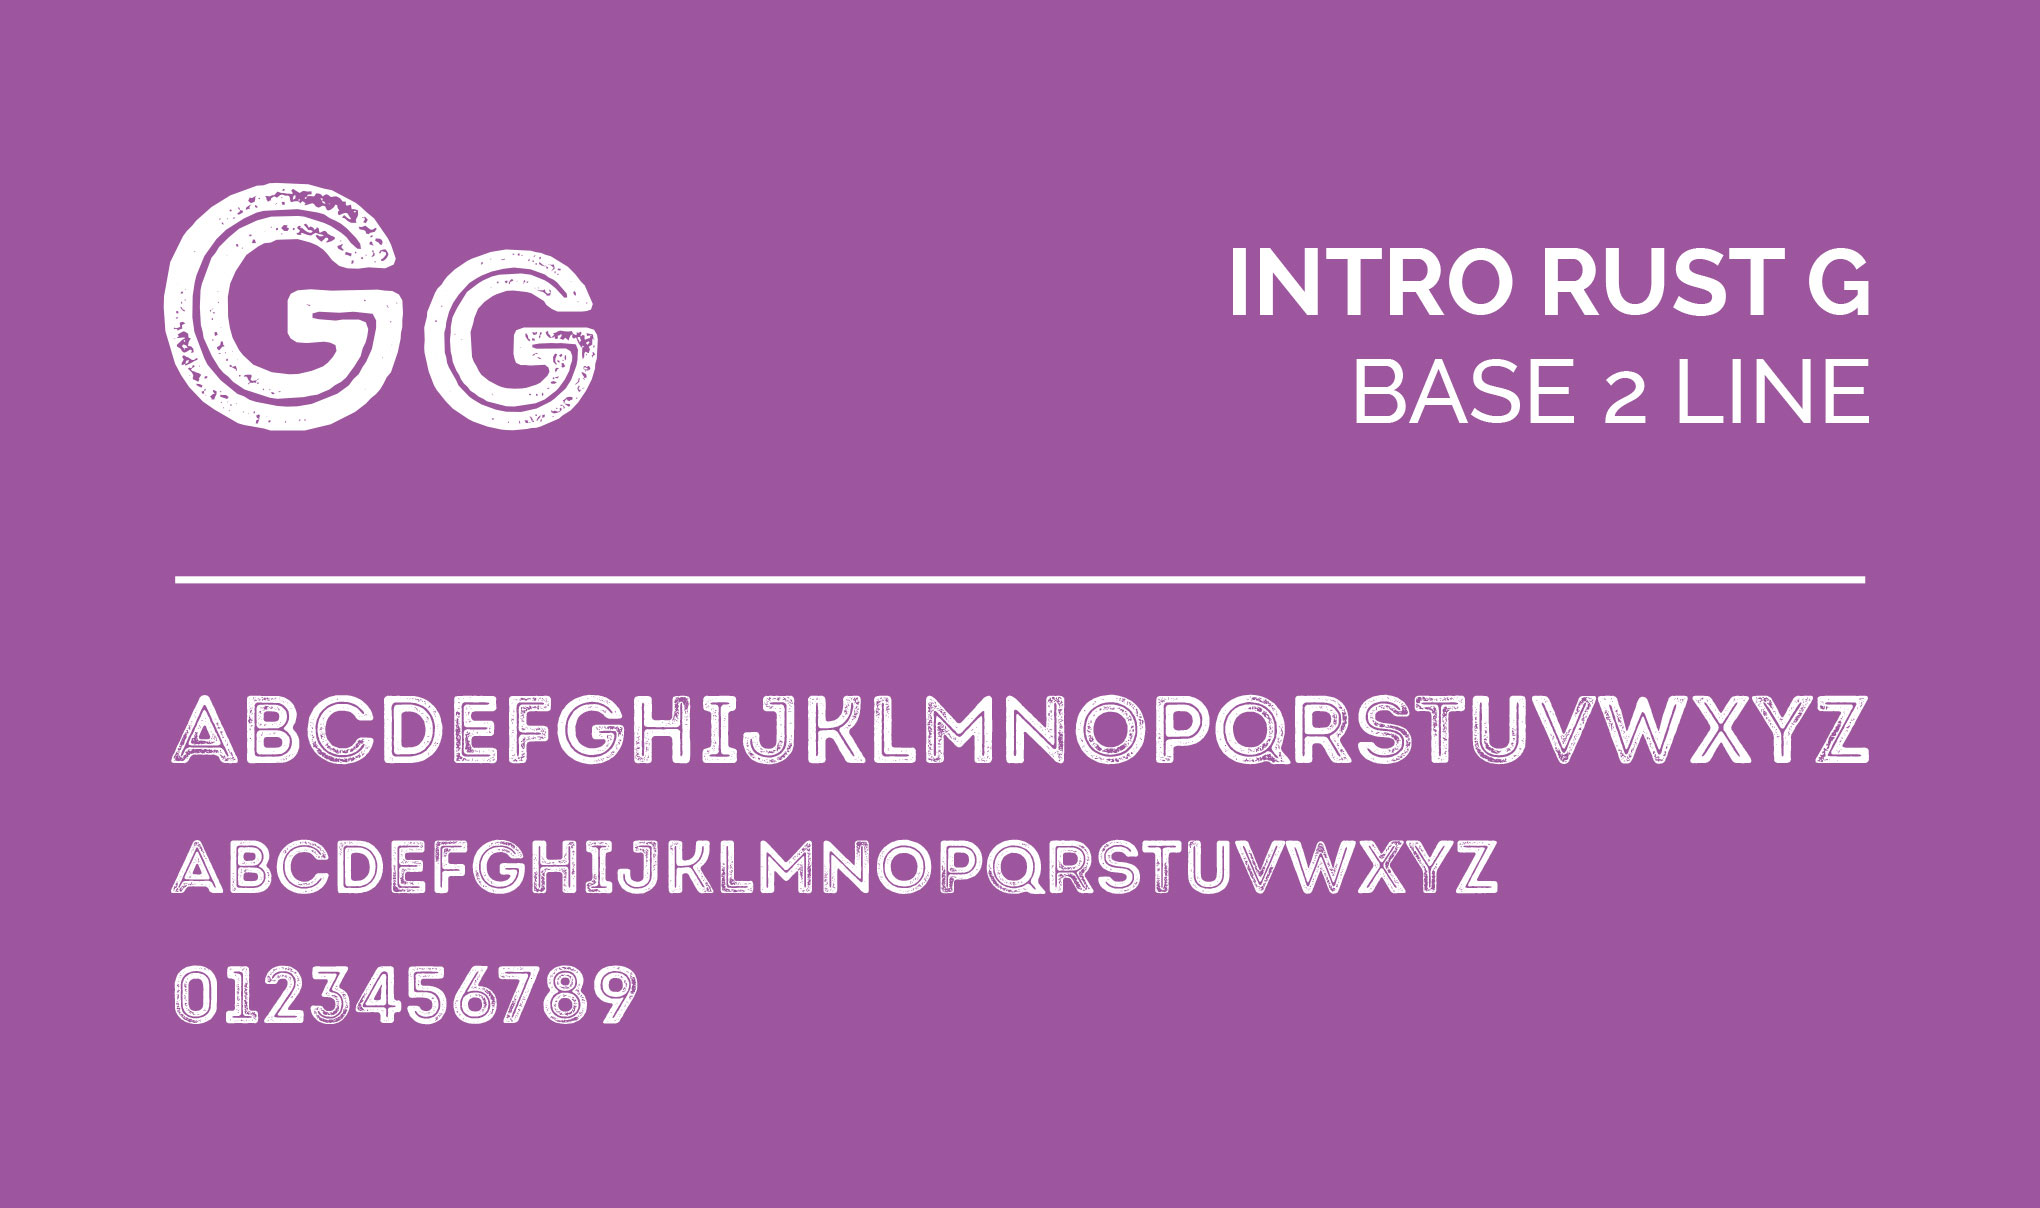 INTRO RUST G - Base 2 Line. Font layout.